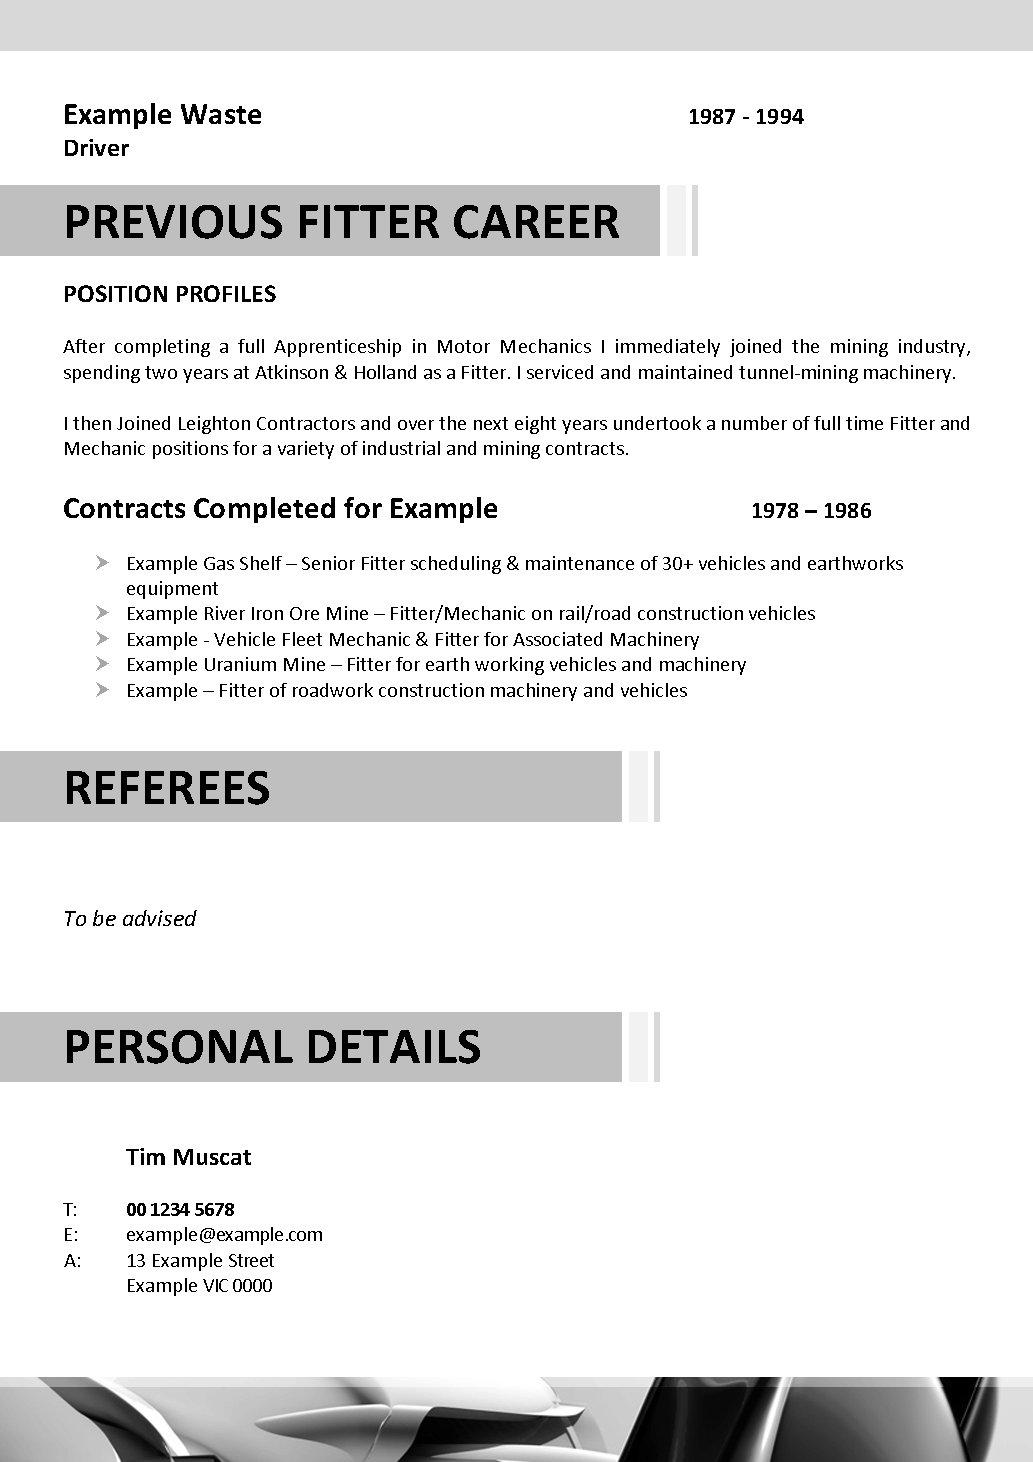 Fitter and turner resume